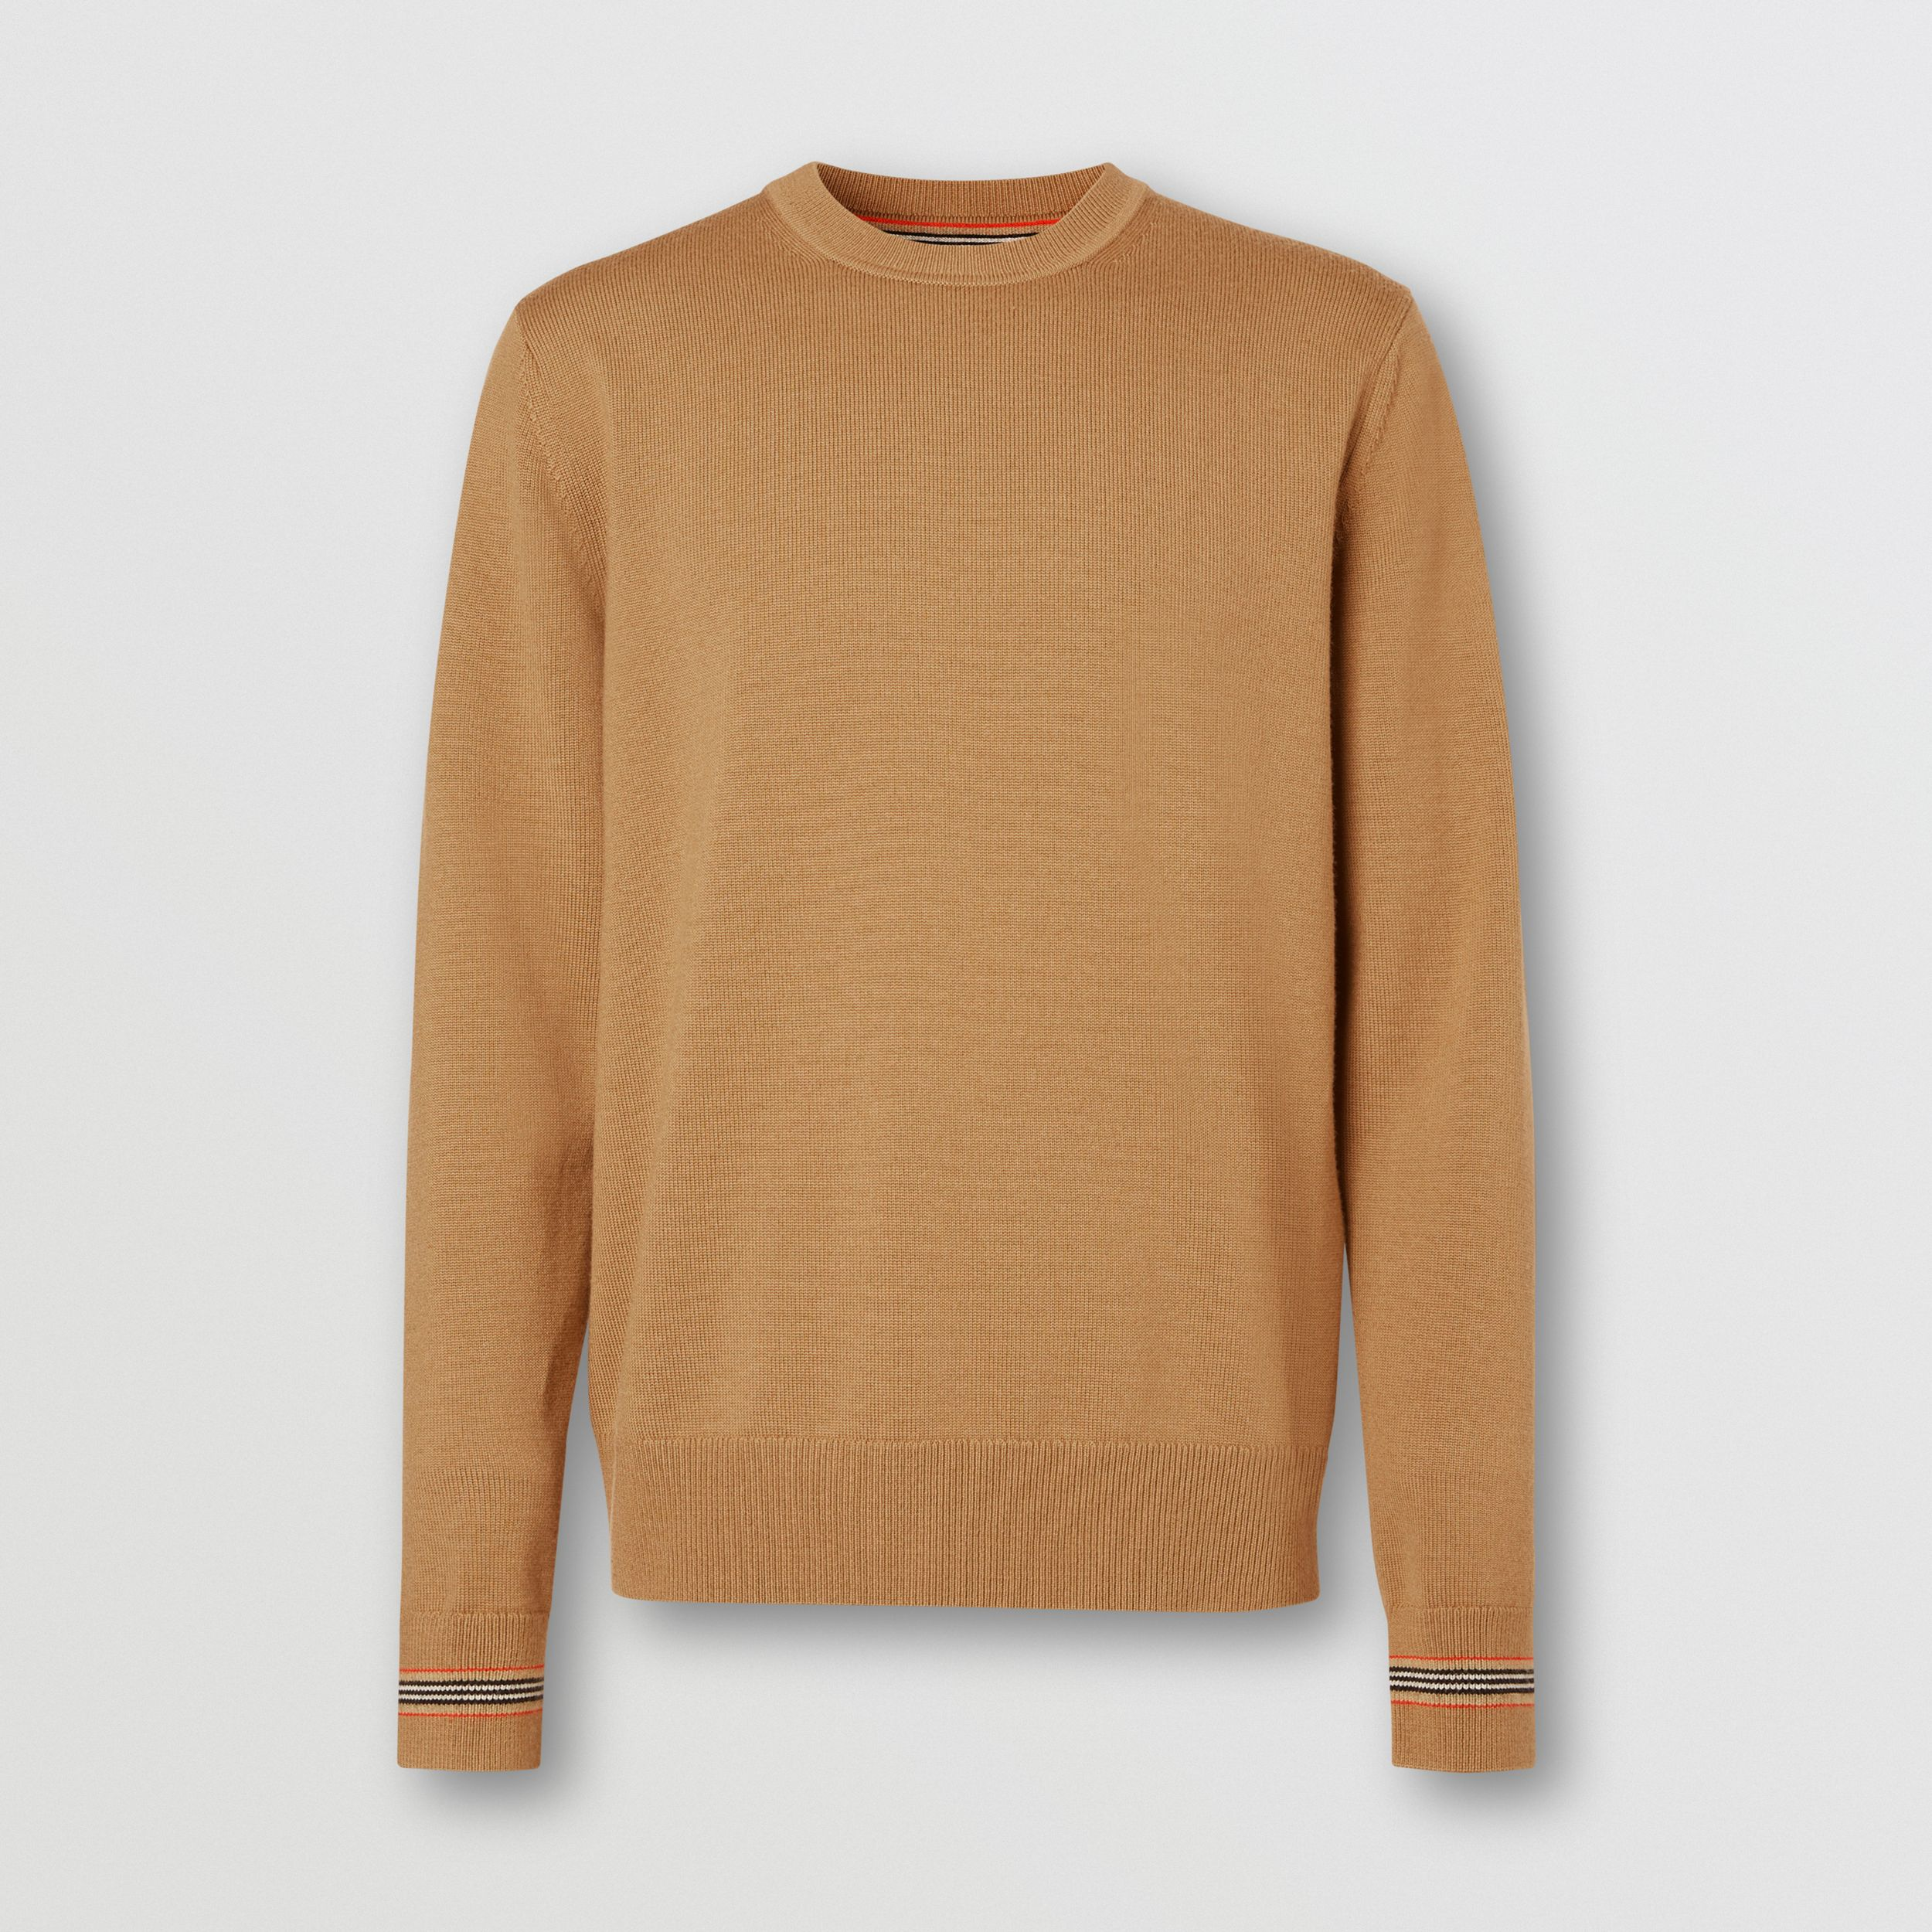 Icon Stripe Trim Merino Wool Sweater in Camel - Men | Burberry - 4